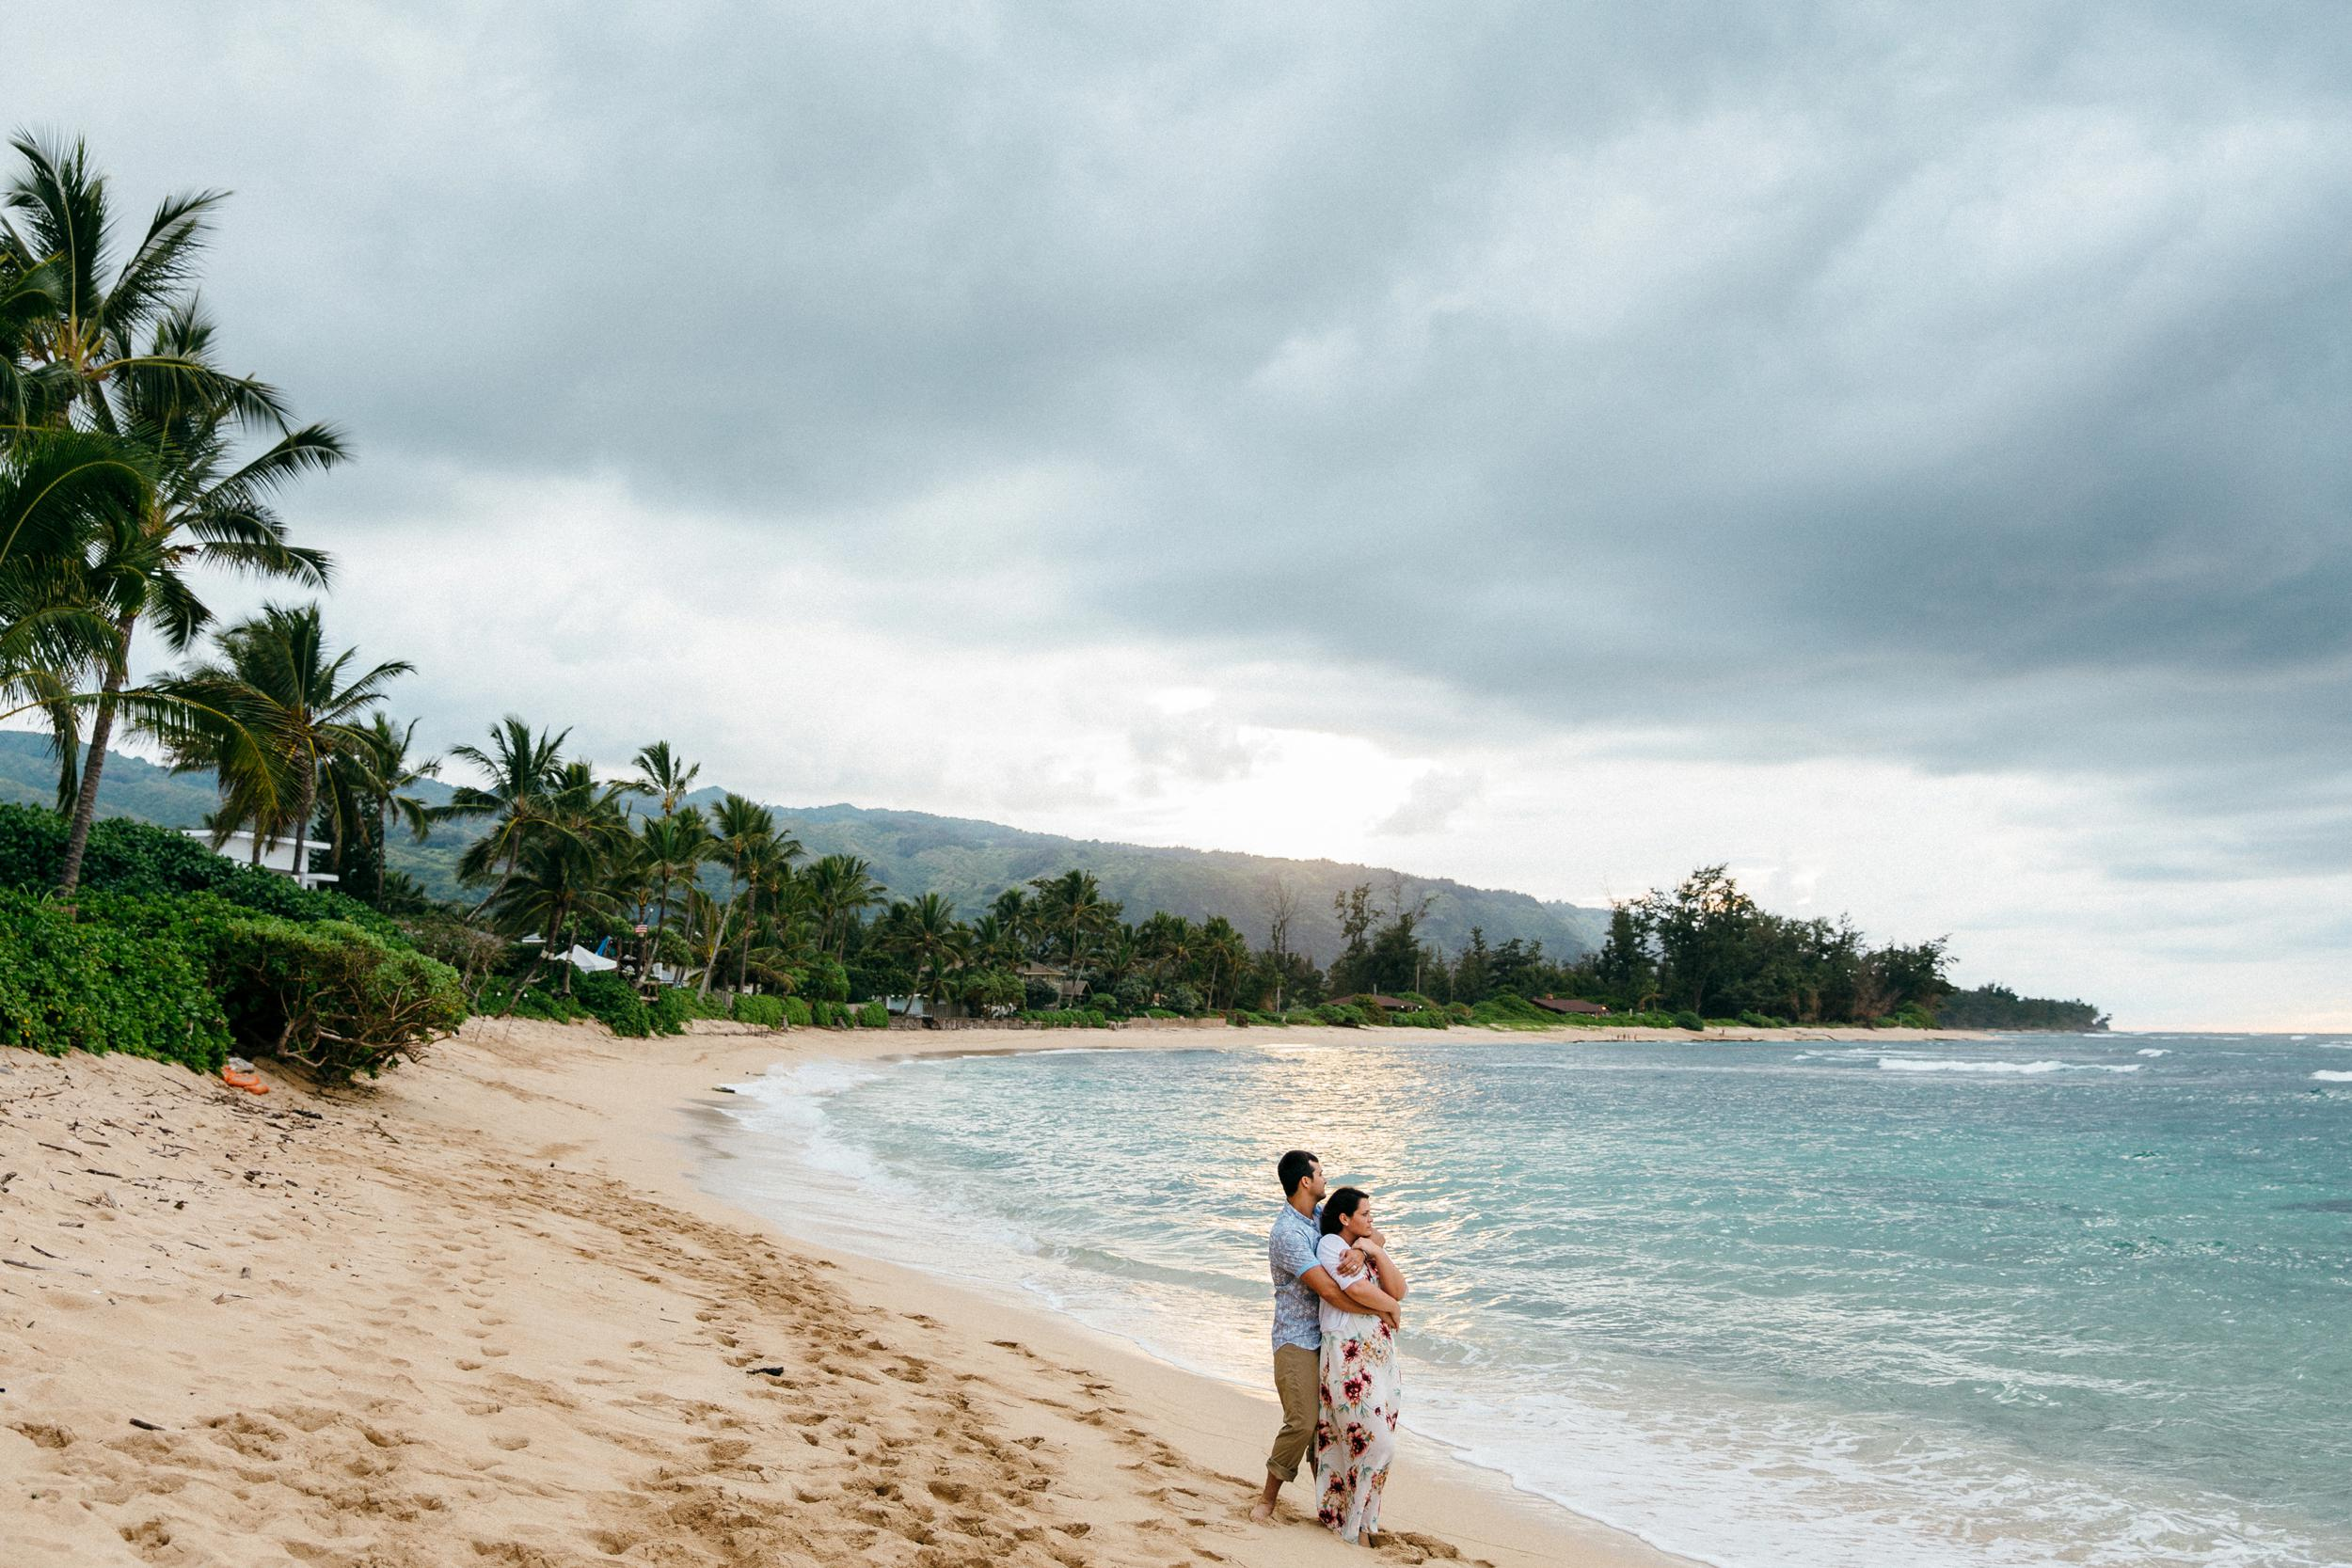 north-shore-oahu-day-after-honeymoon-photographs_0010.jpg